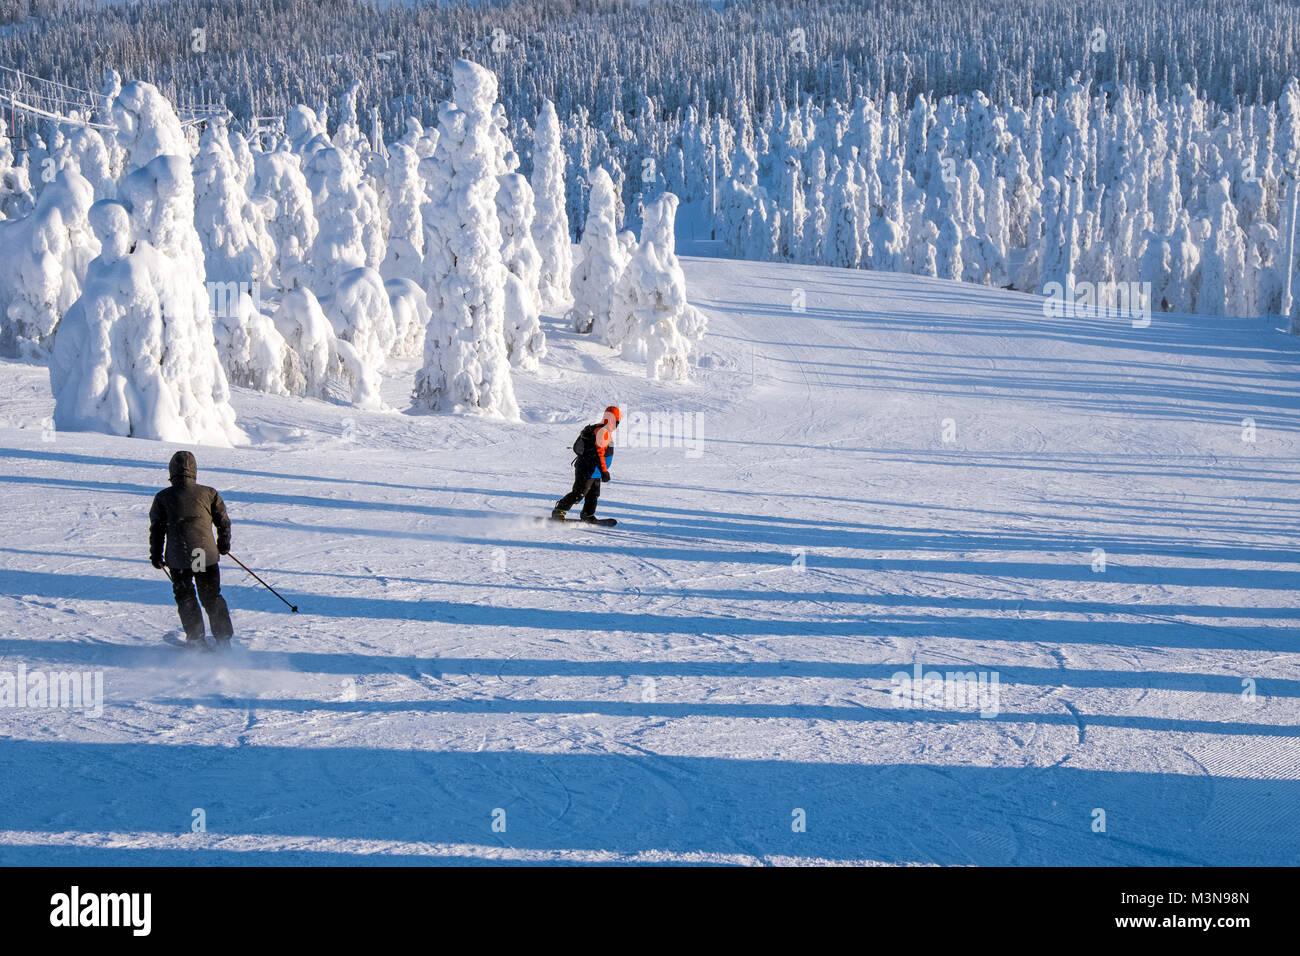 Skiers on piste atThe ski resort of Ruka in Finland - Stock Image